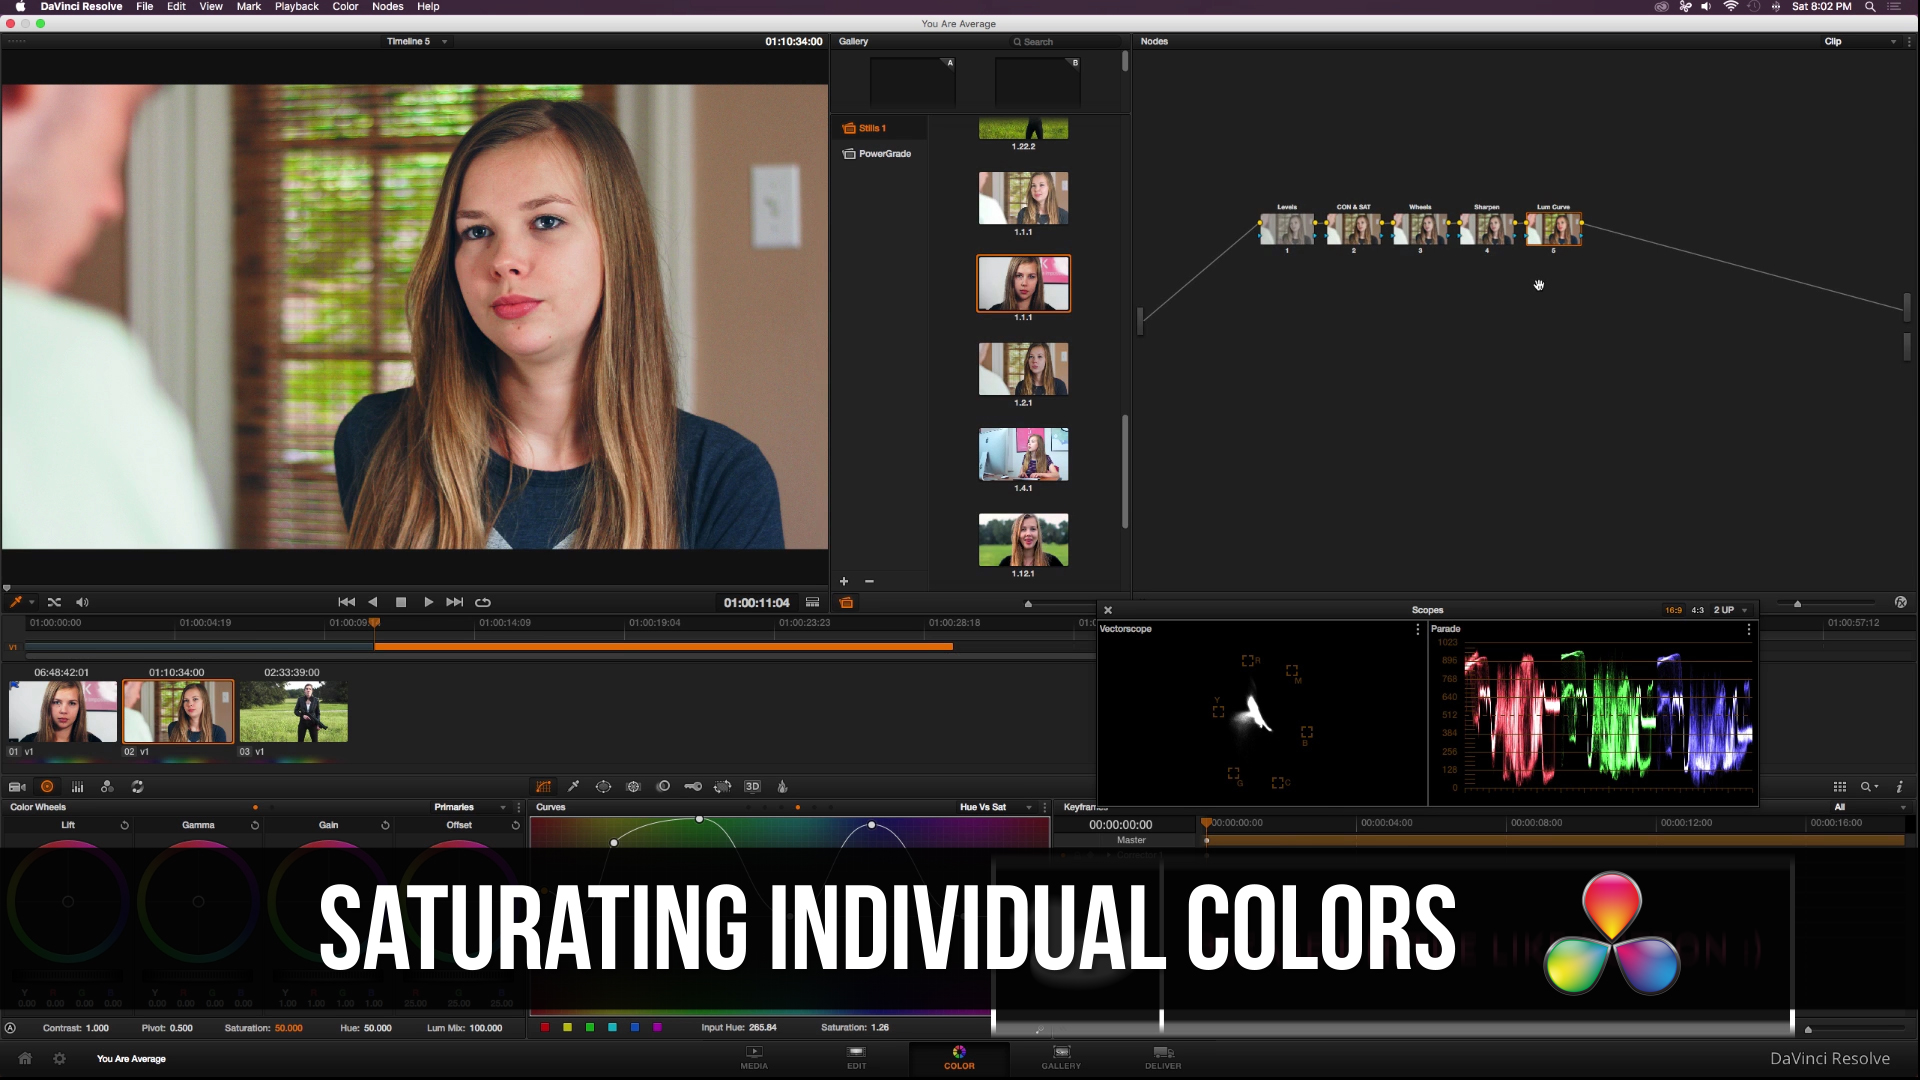 DaVinci Resolve Saturating Different Hues